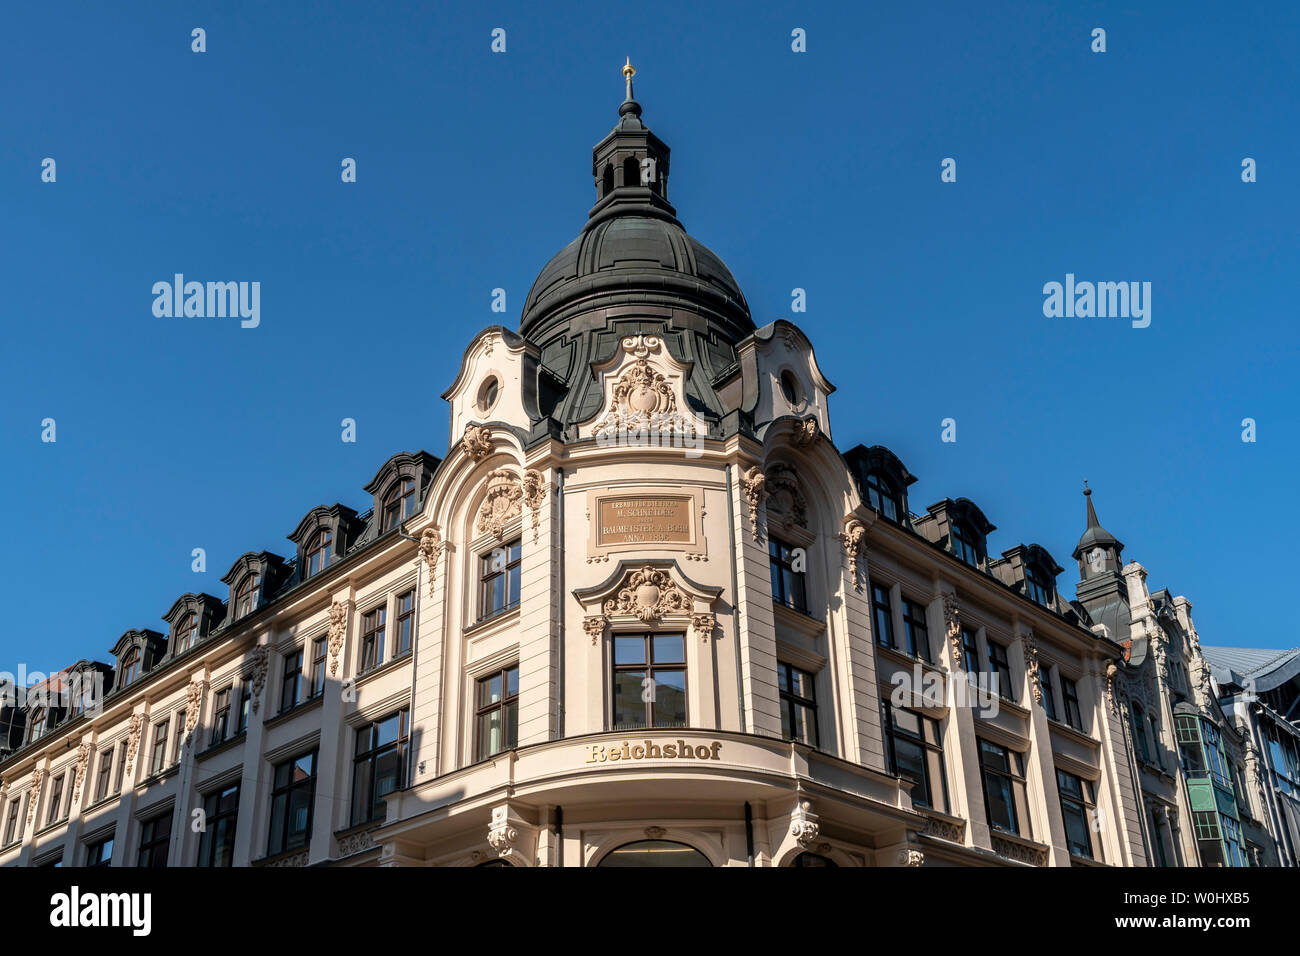 Reichshof building , former warehouse by architect Bohm, Leipzig, Saxonia - Stock Image